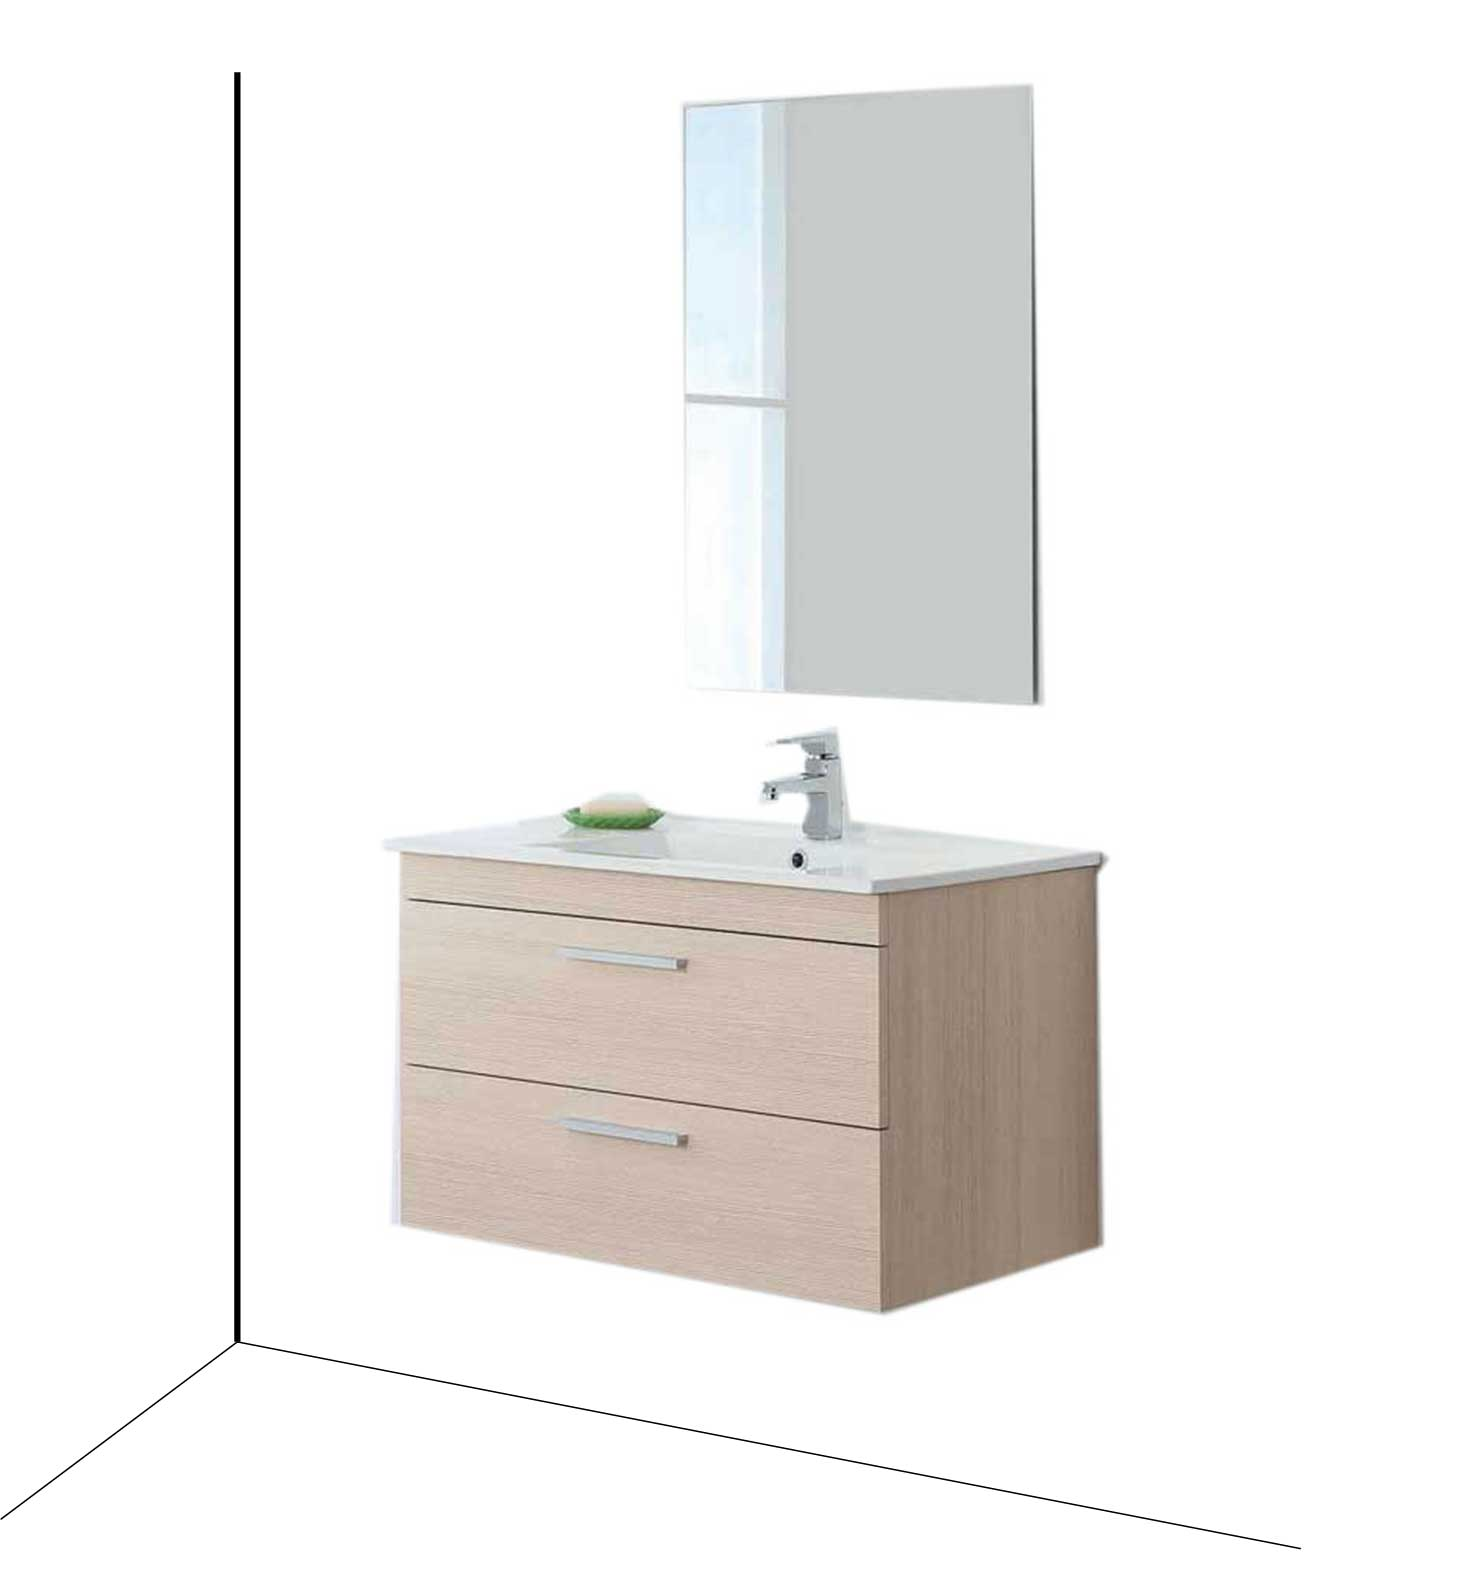 Mobile-lavabo-Cin-melaminico-in-vendita-online-mybricoshop